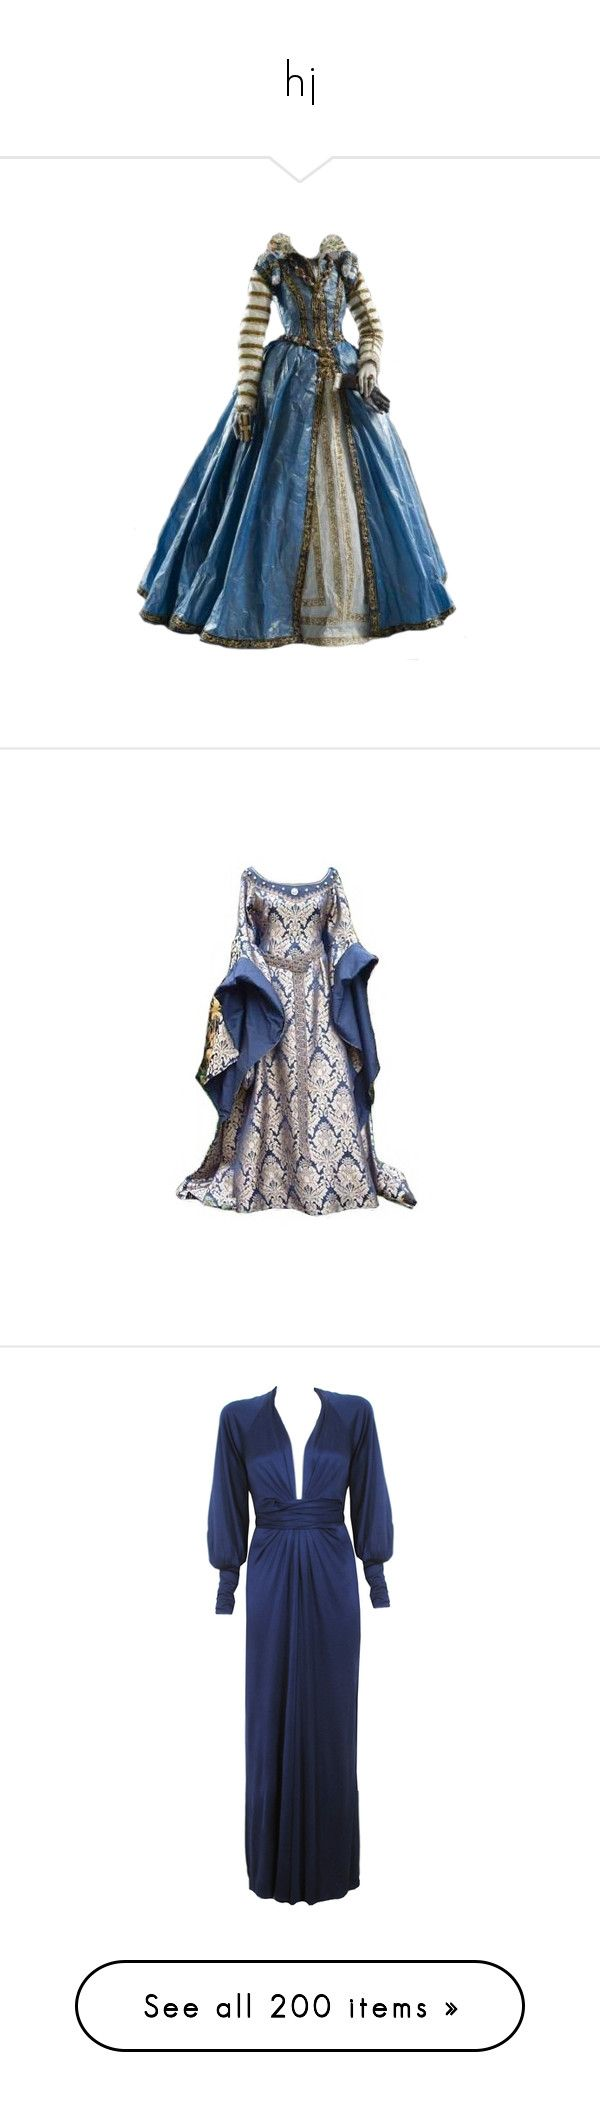 """""""hj"""" by iamdreamchaser ❤ liked on Polyvore featuring dresses, dolls, gowns, vintage, blue vintage dress, baby doll dress, babydoll dresses, blue color dress, blue babydoll dress and gown"""